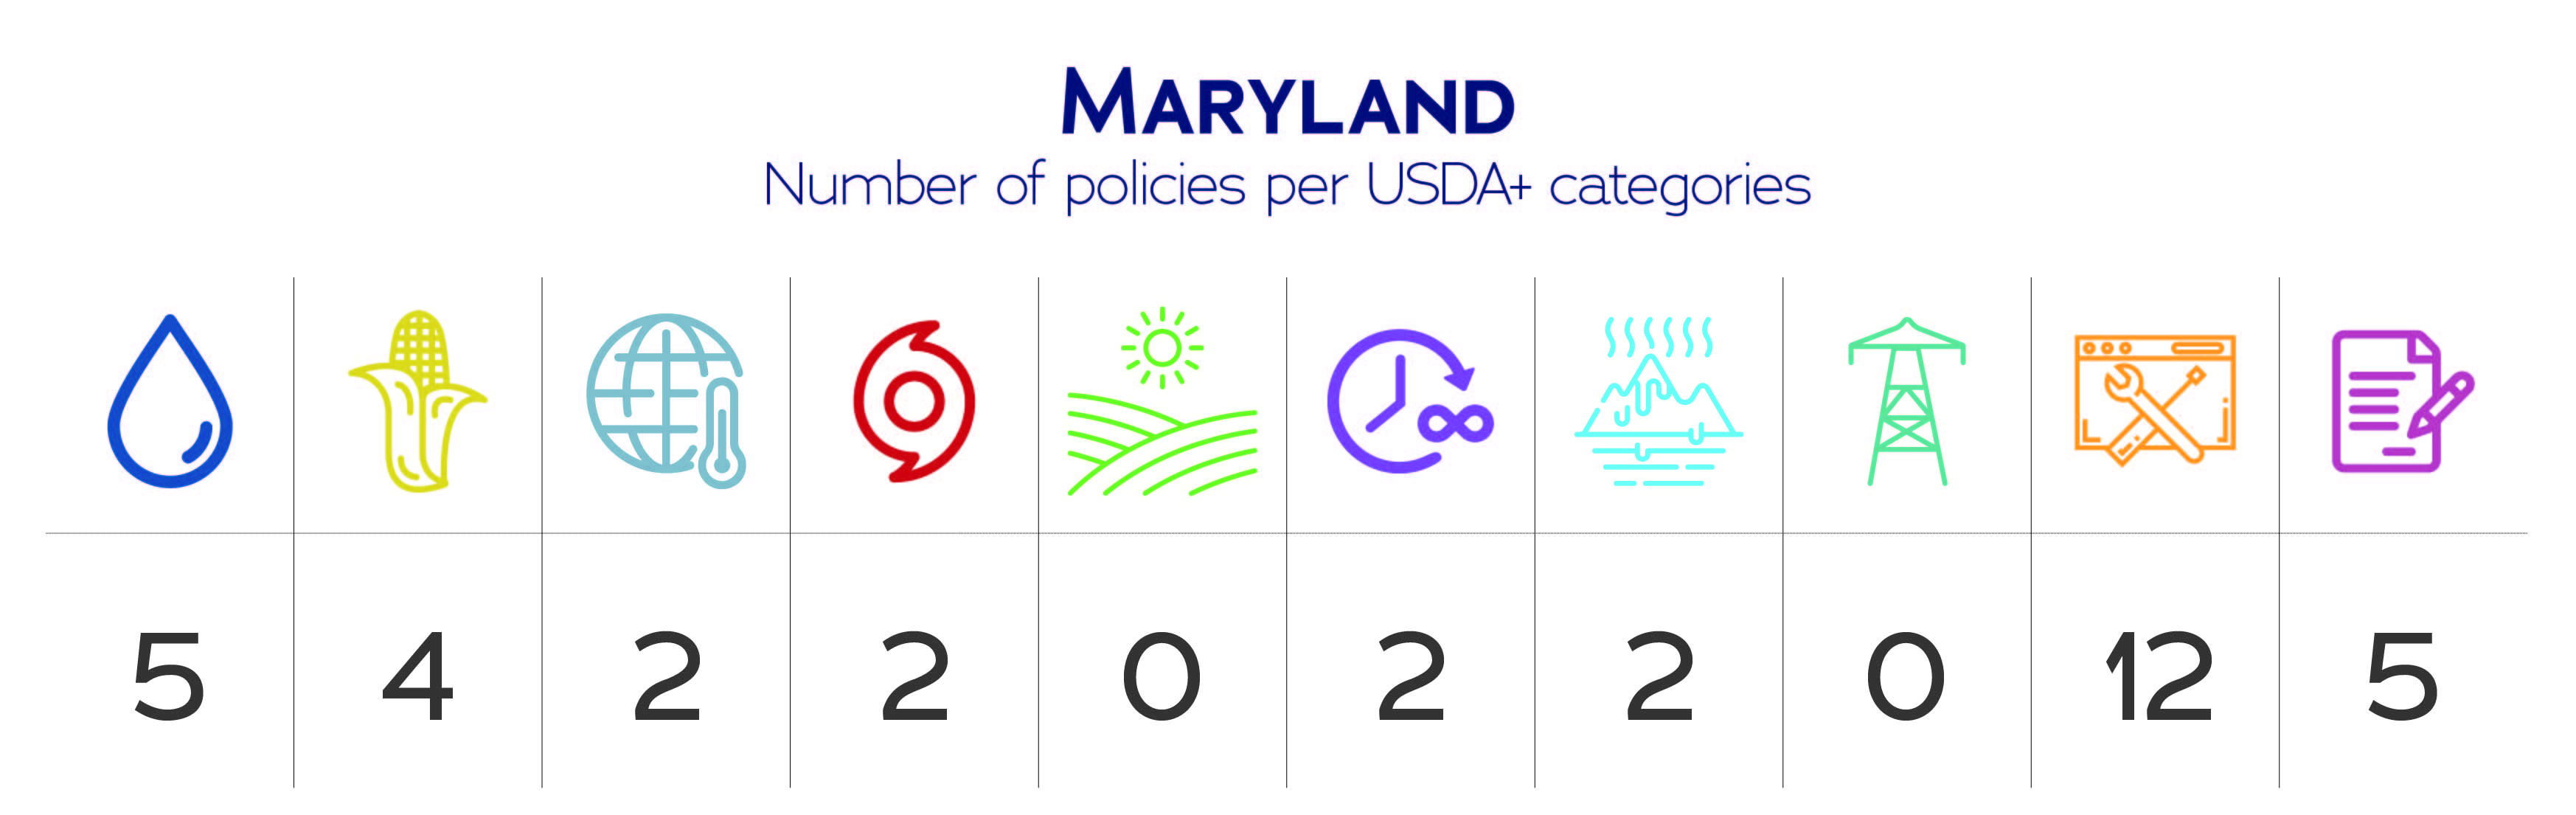 Maryland USDA+ category data